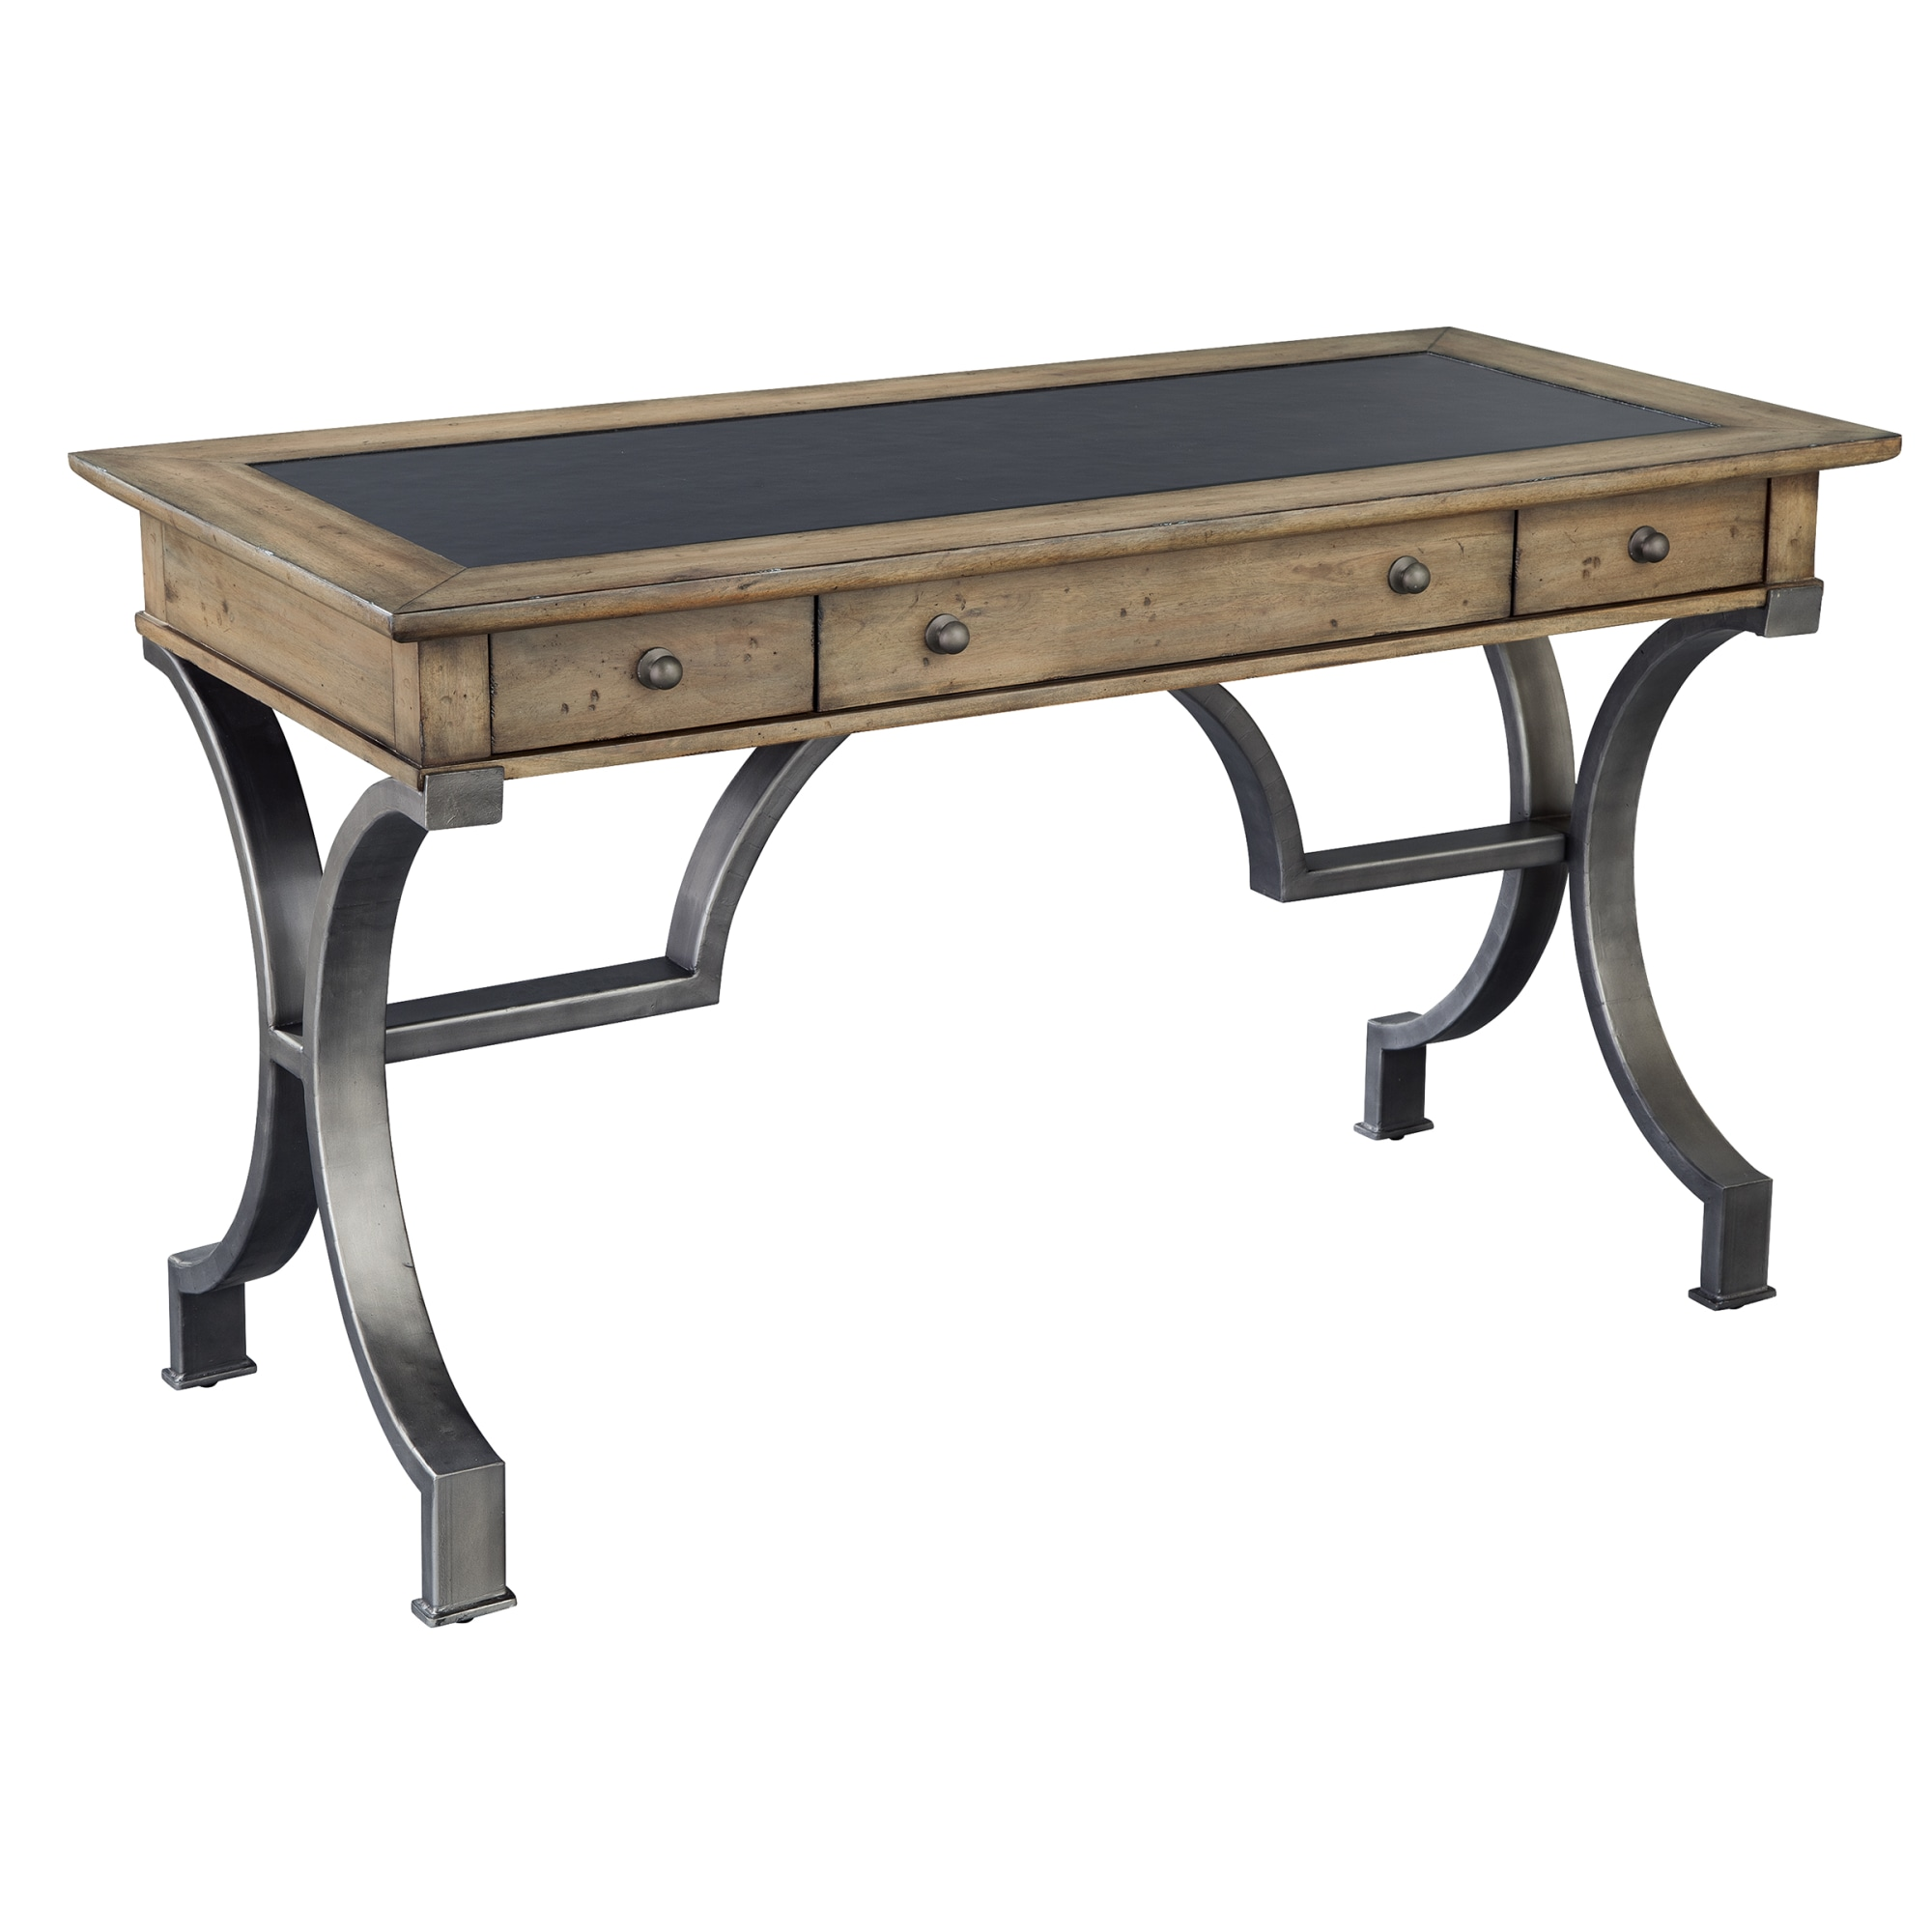 Image for 2-7664 Office@Home Aspen Desk from Hekman Official Website